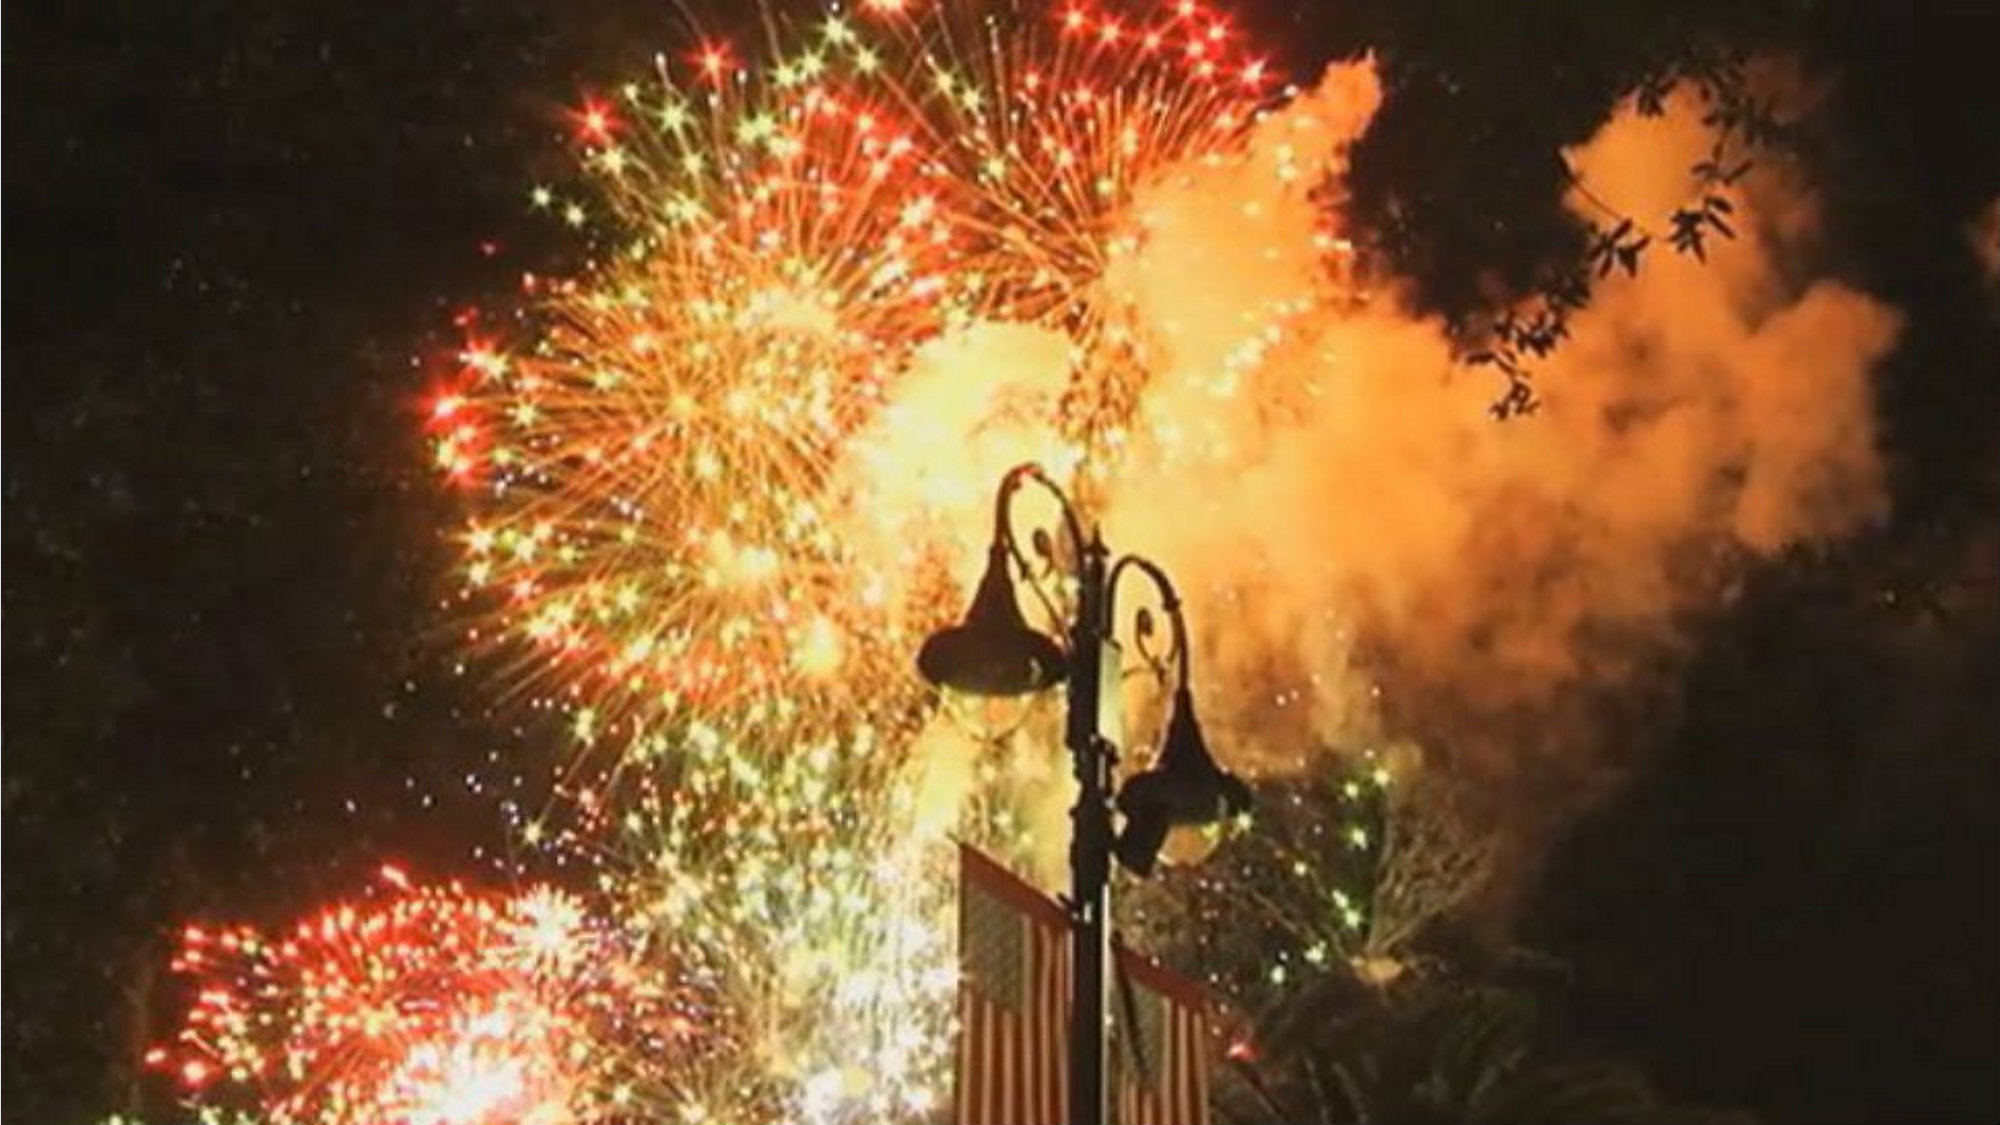 e873ca7b3 A list of Central Florida celebrations for 4th of July 2019. (Spectrum News  13